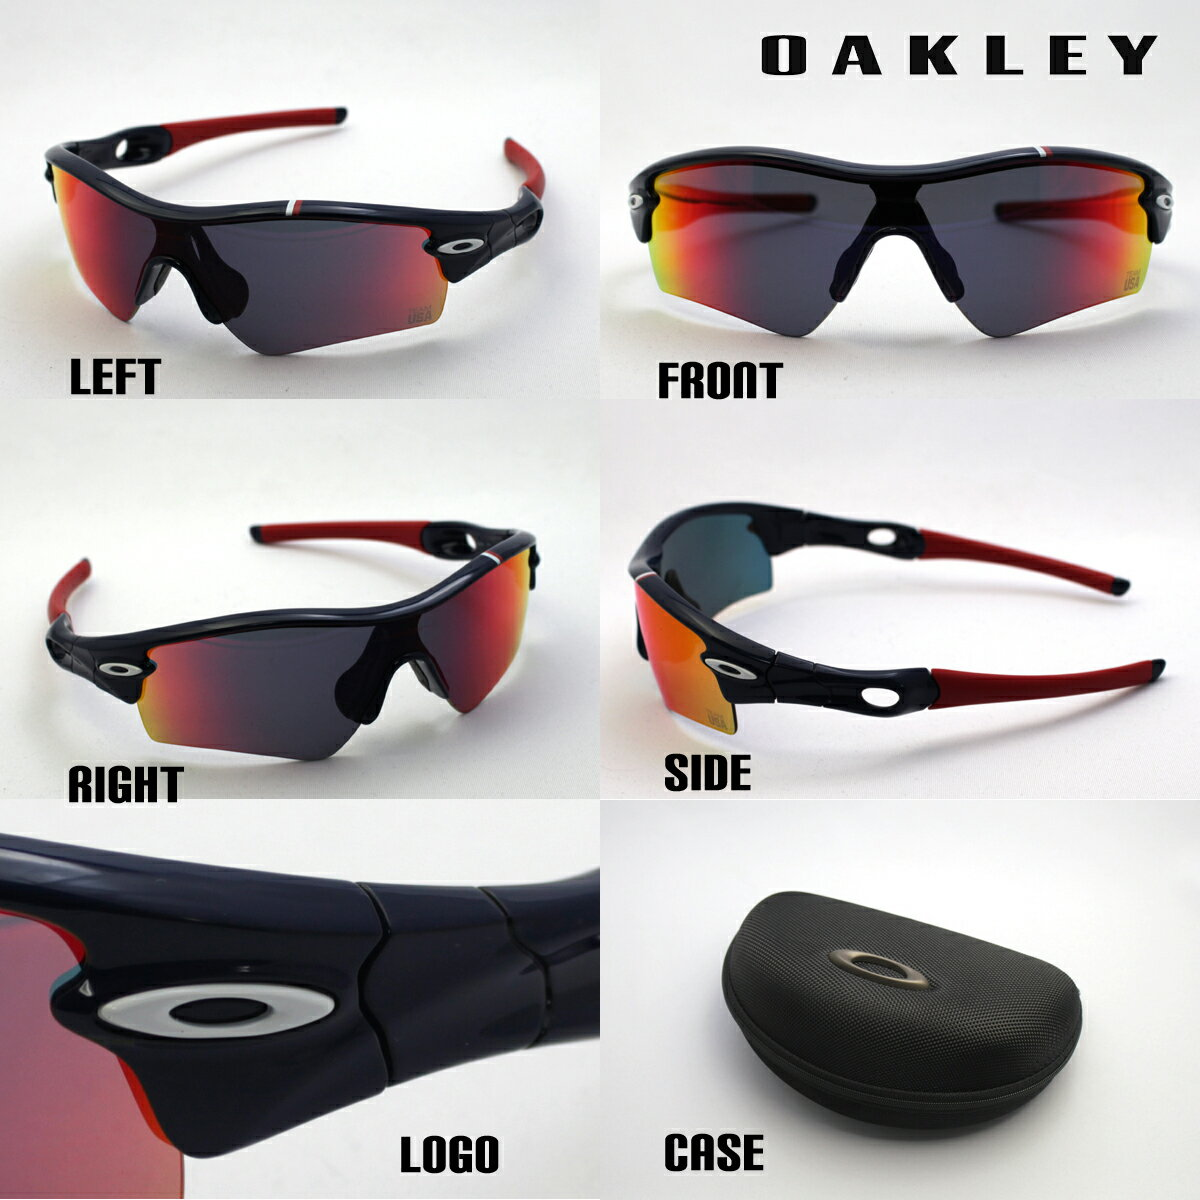 oakley for sale in usa